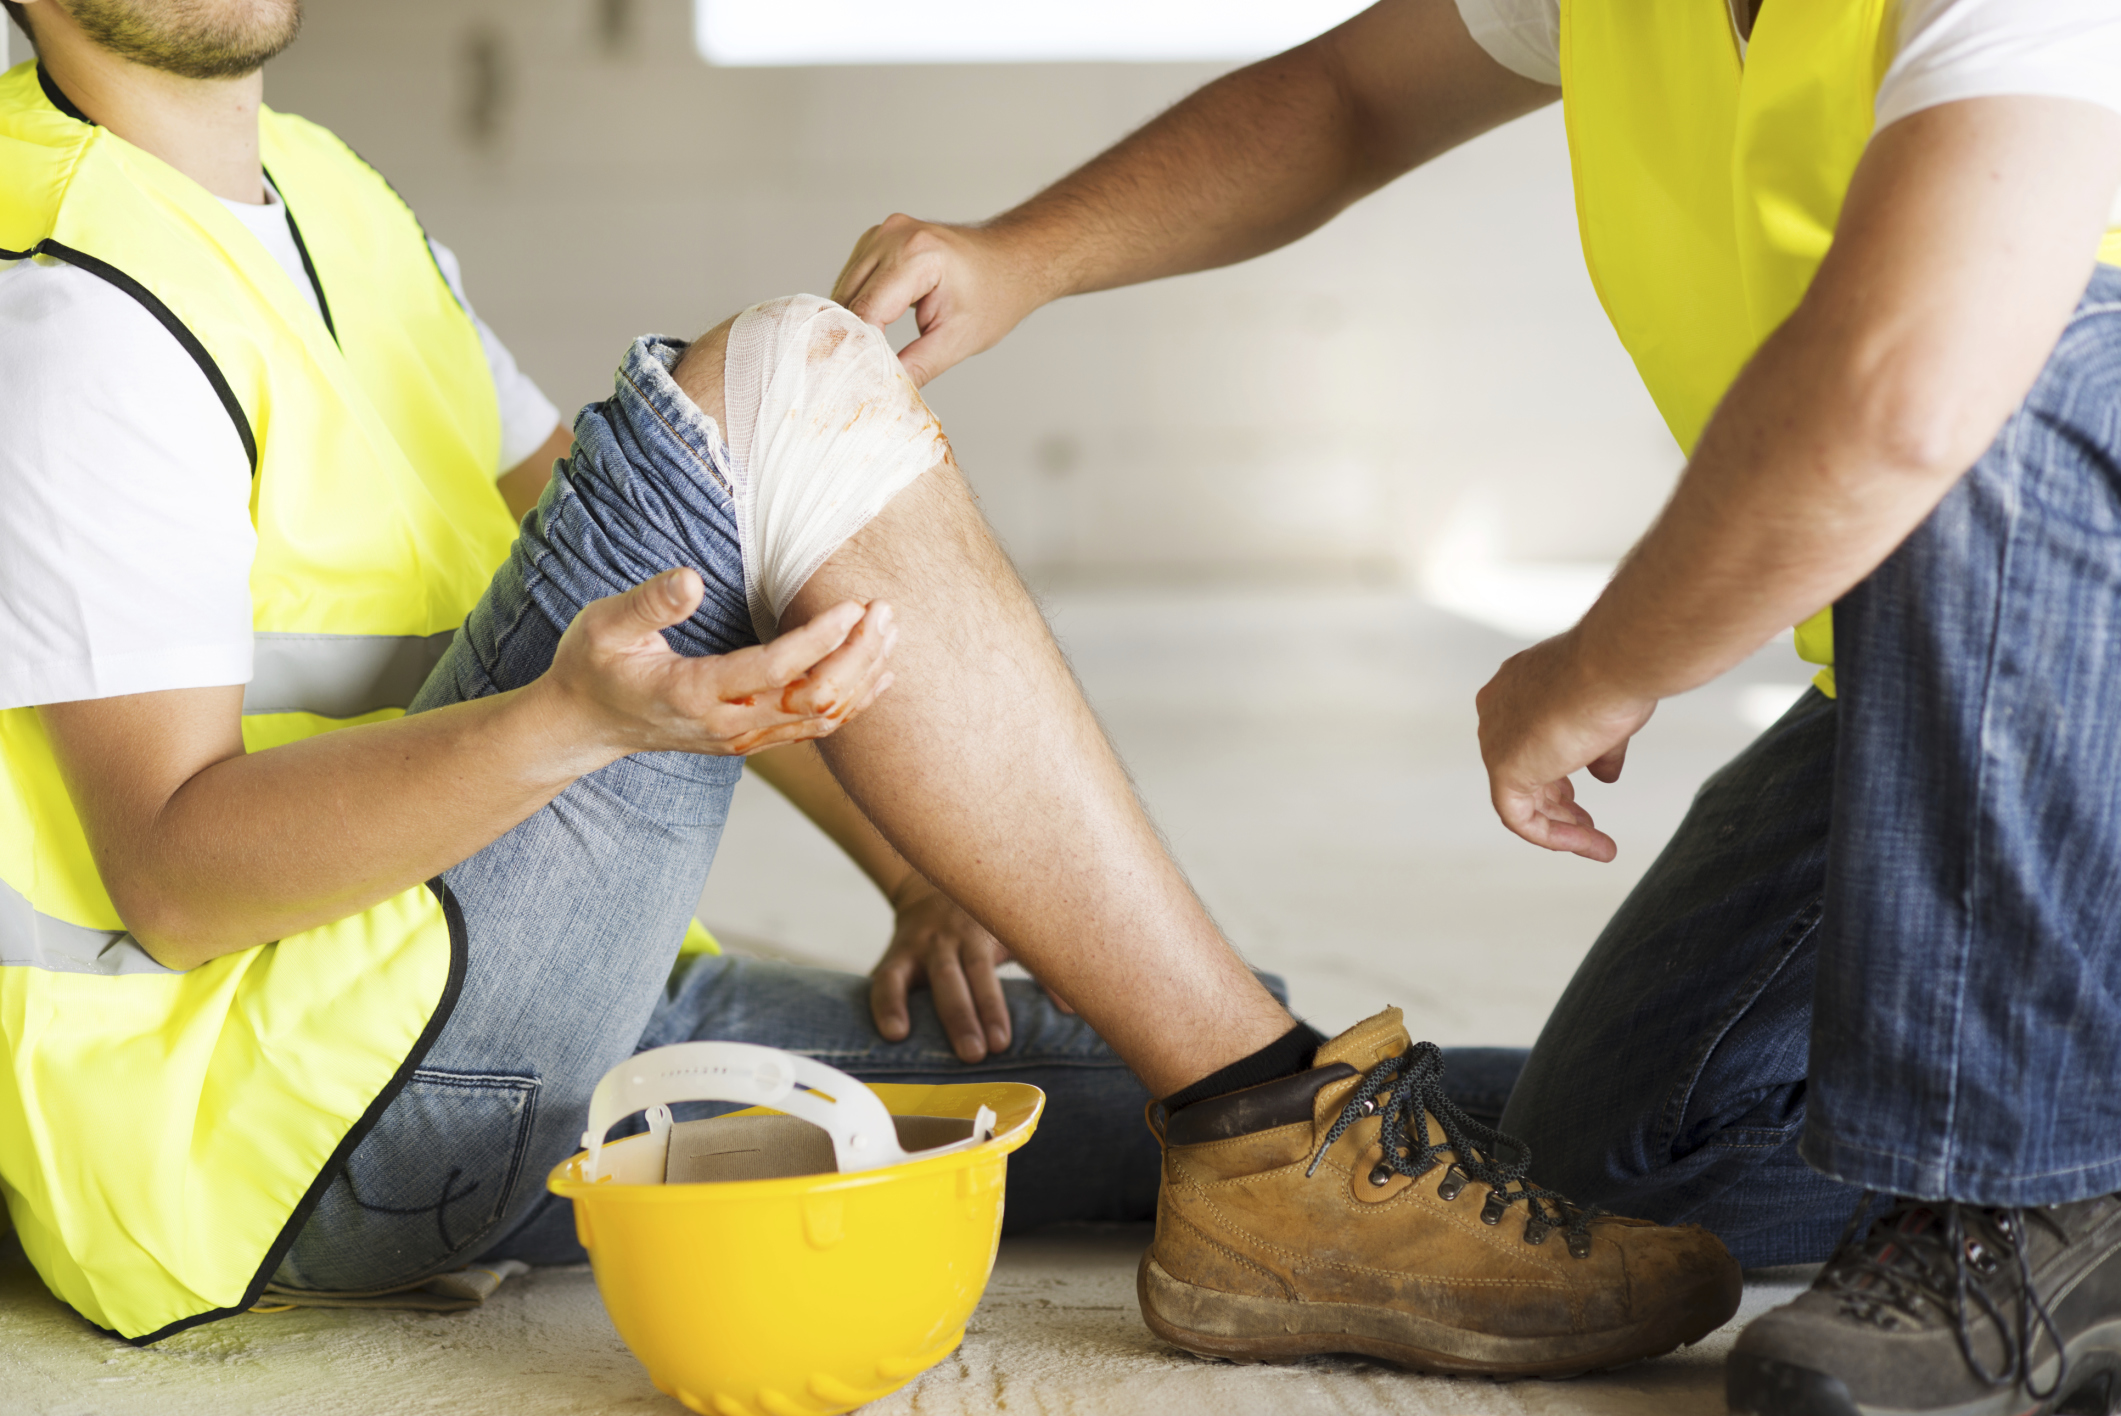 Construction Site injury claim in San Diego.